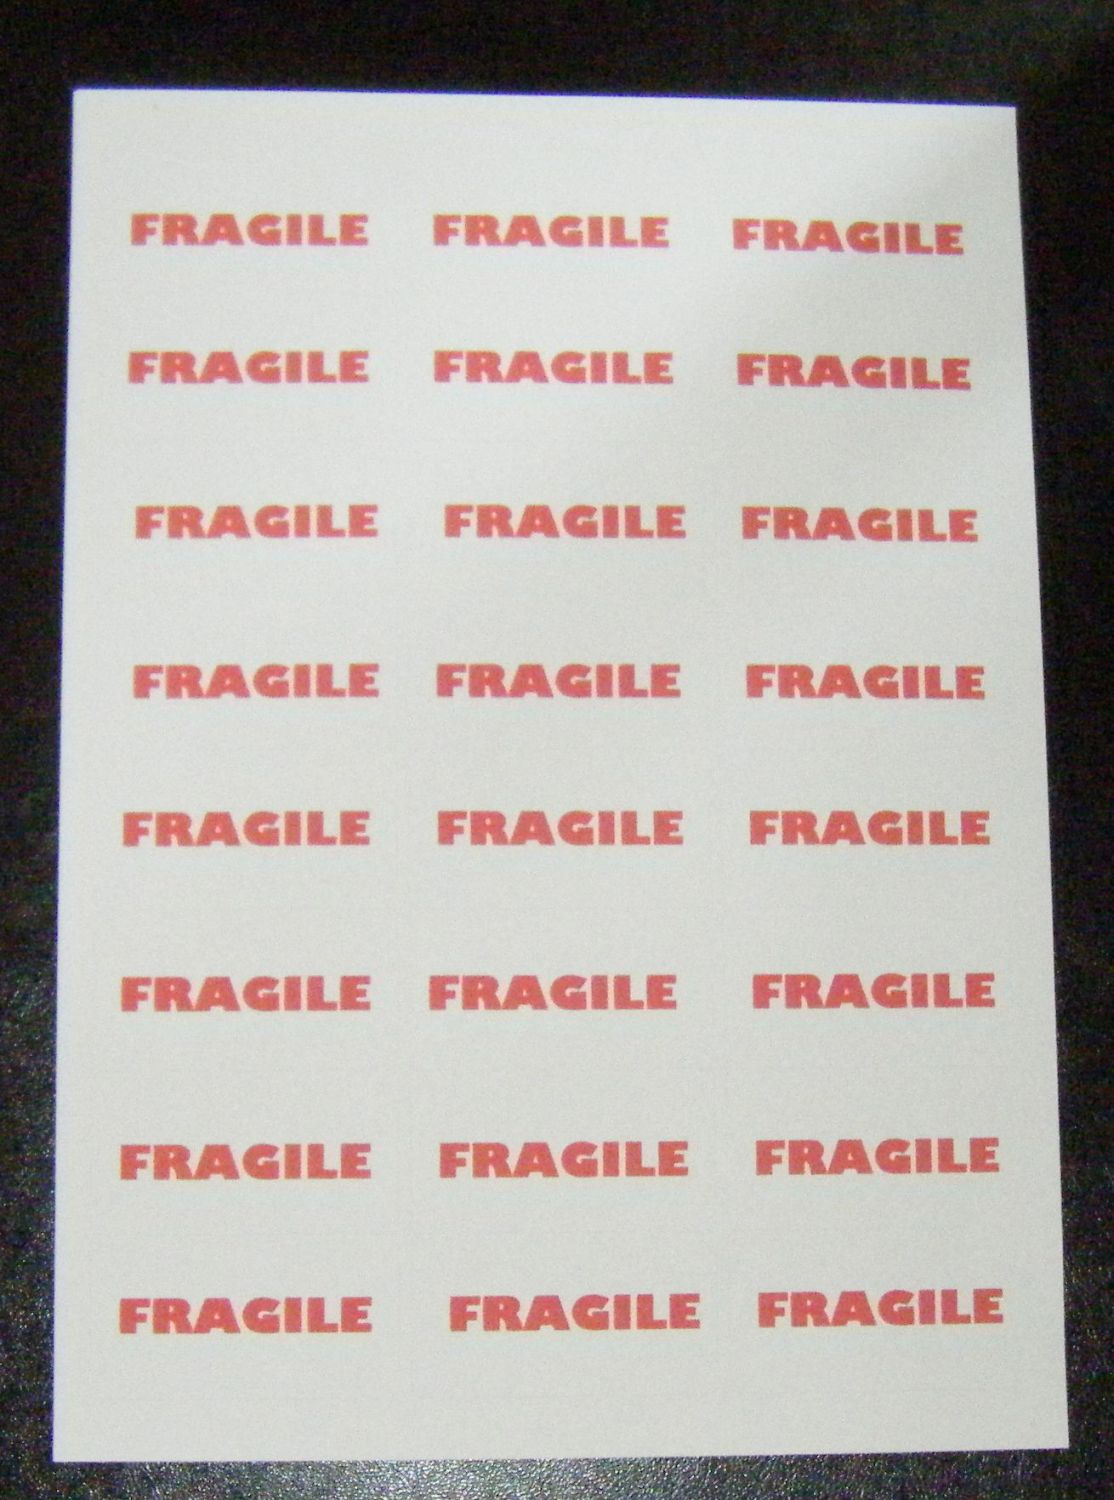 A4 Sheet of FRAGILE Stickers